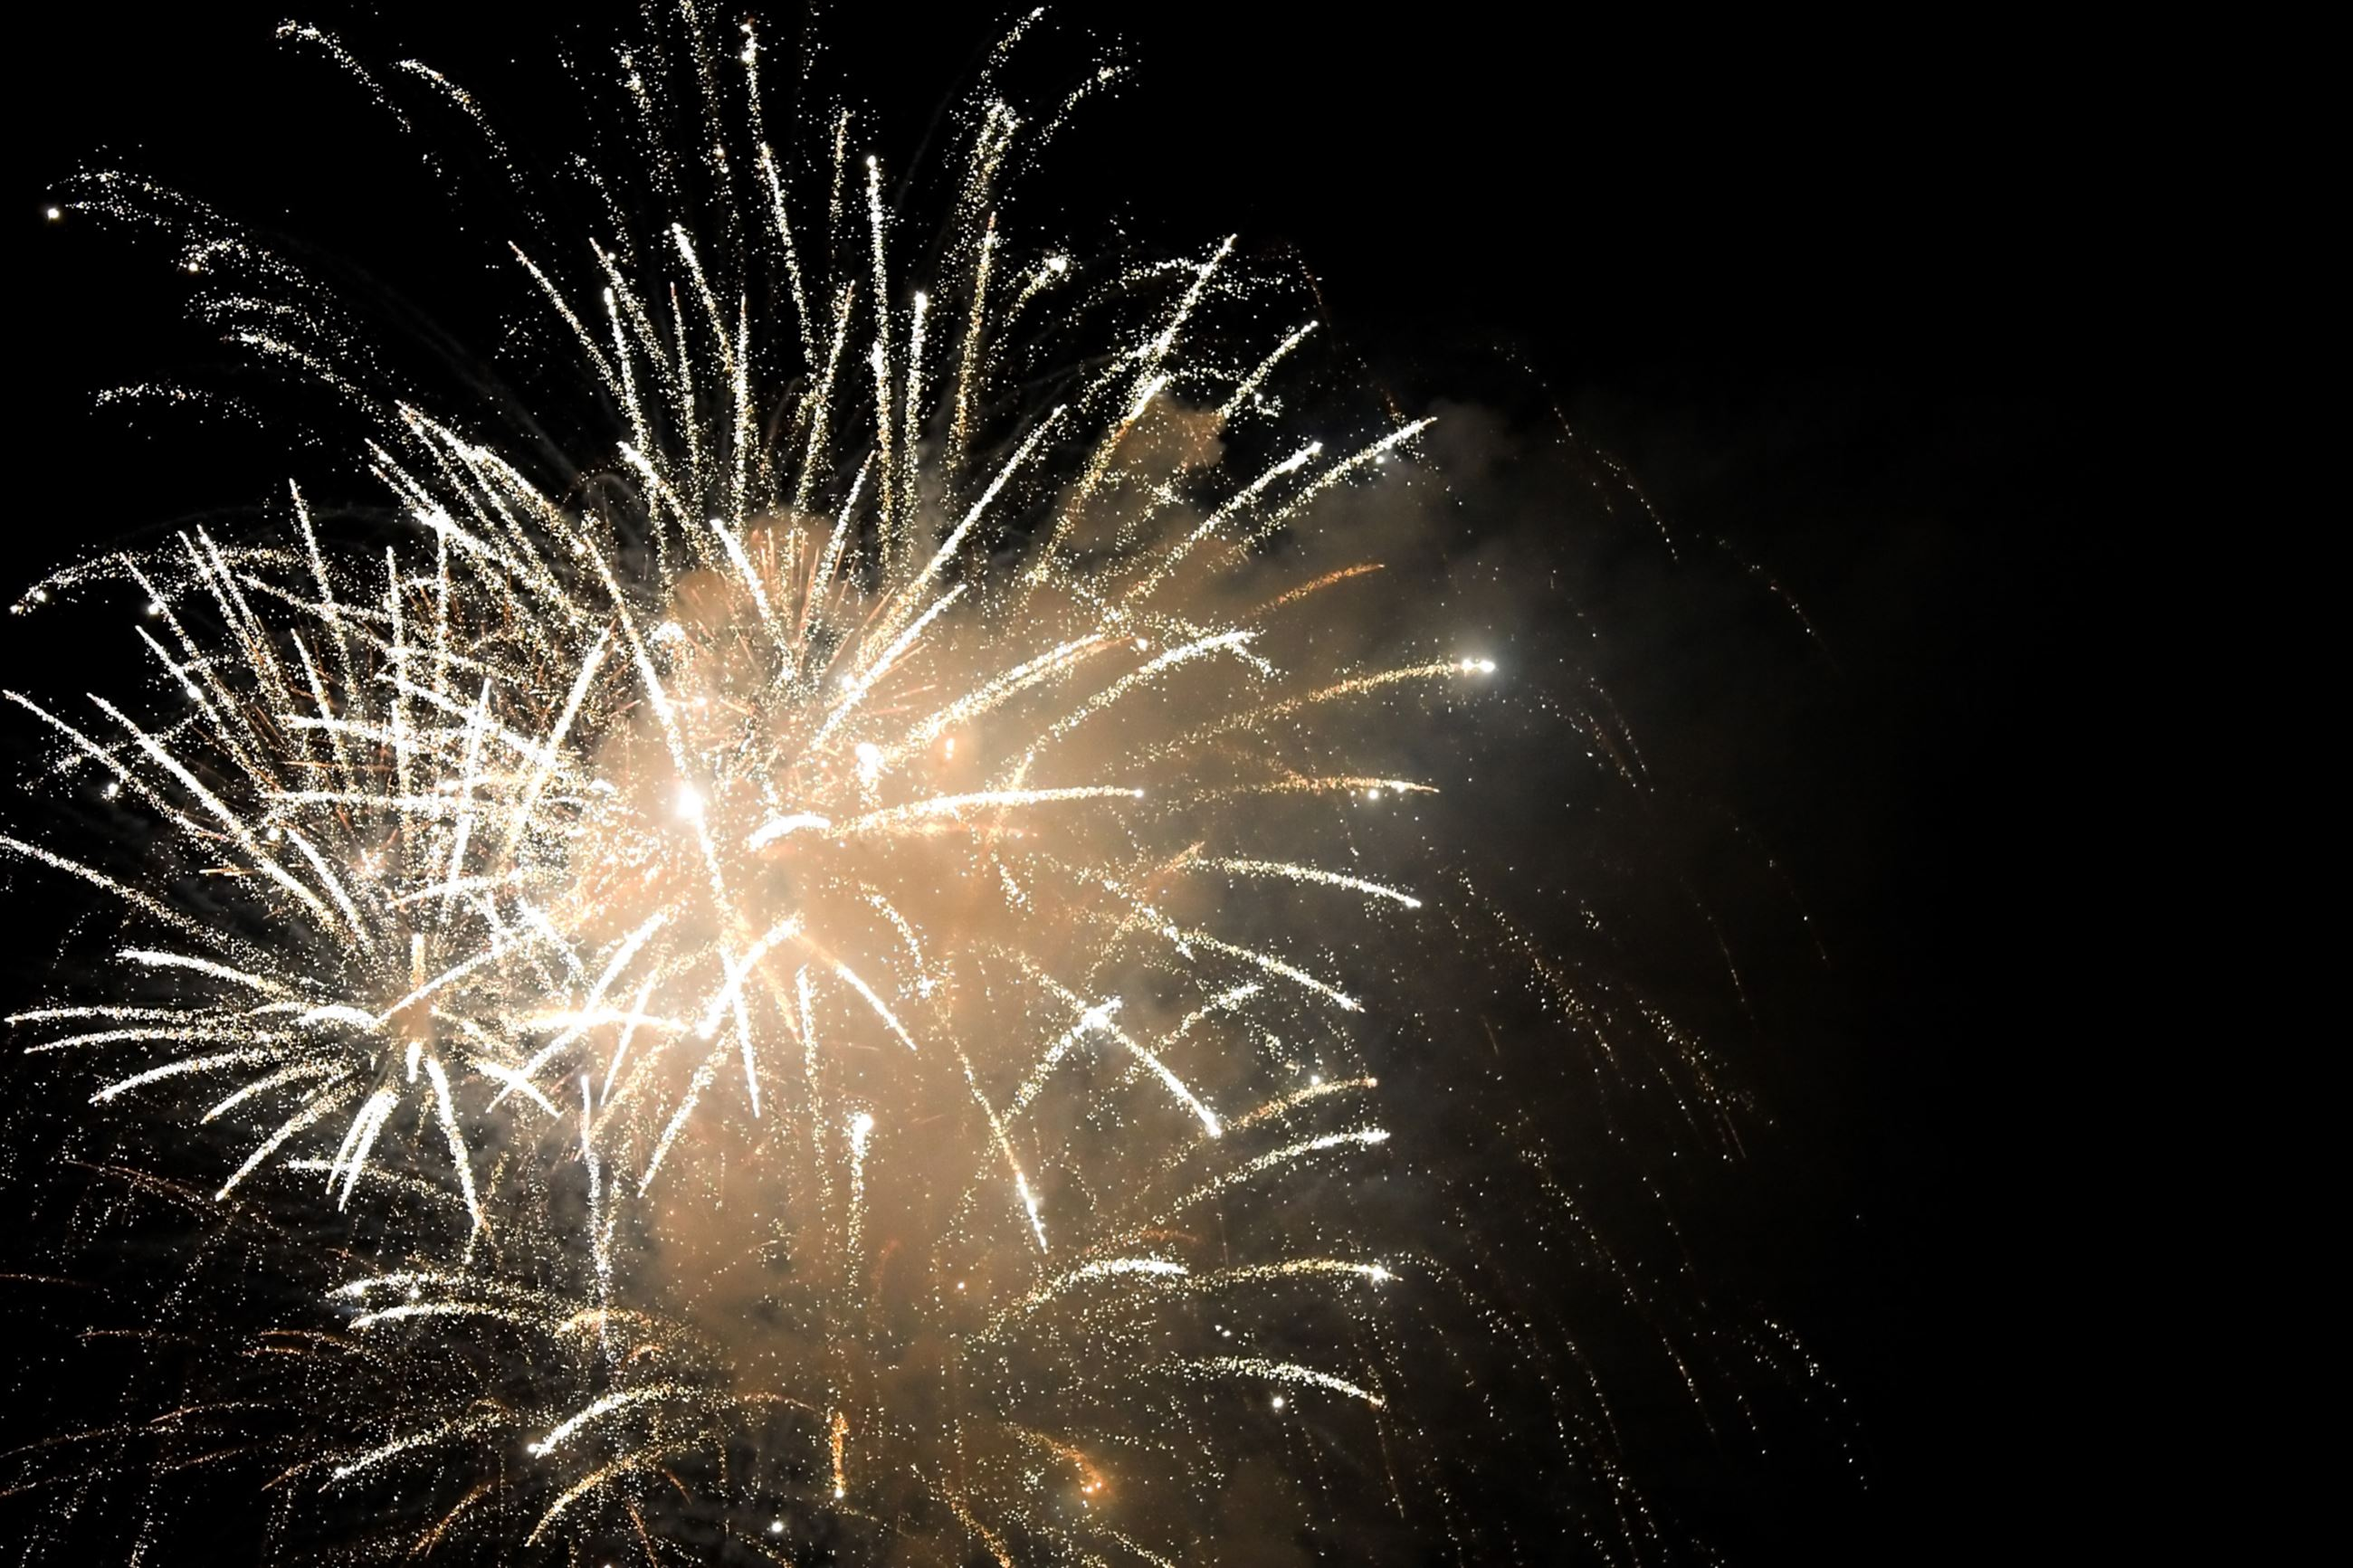 beautiful-fireworks-exploding-over-a-dark-night-sky-plenty-of-copy-space_BKFc-ORHj